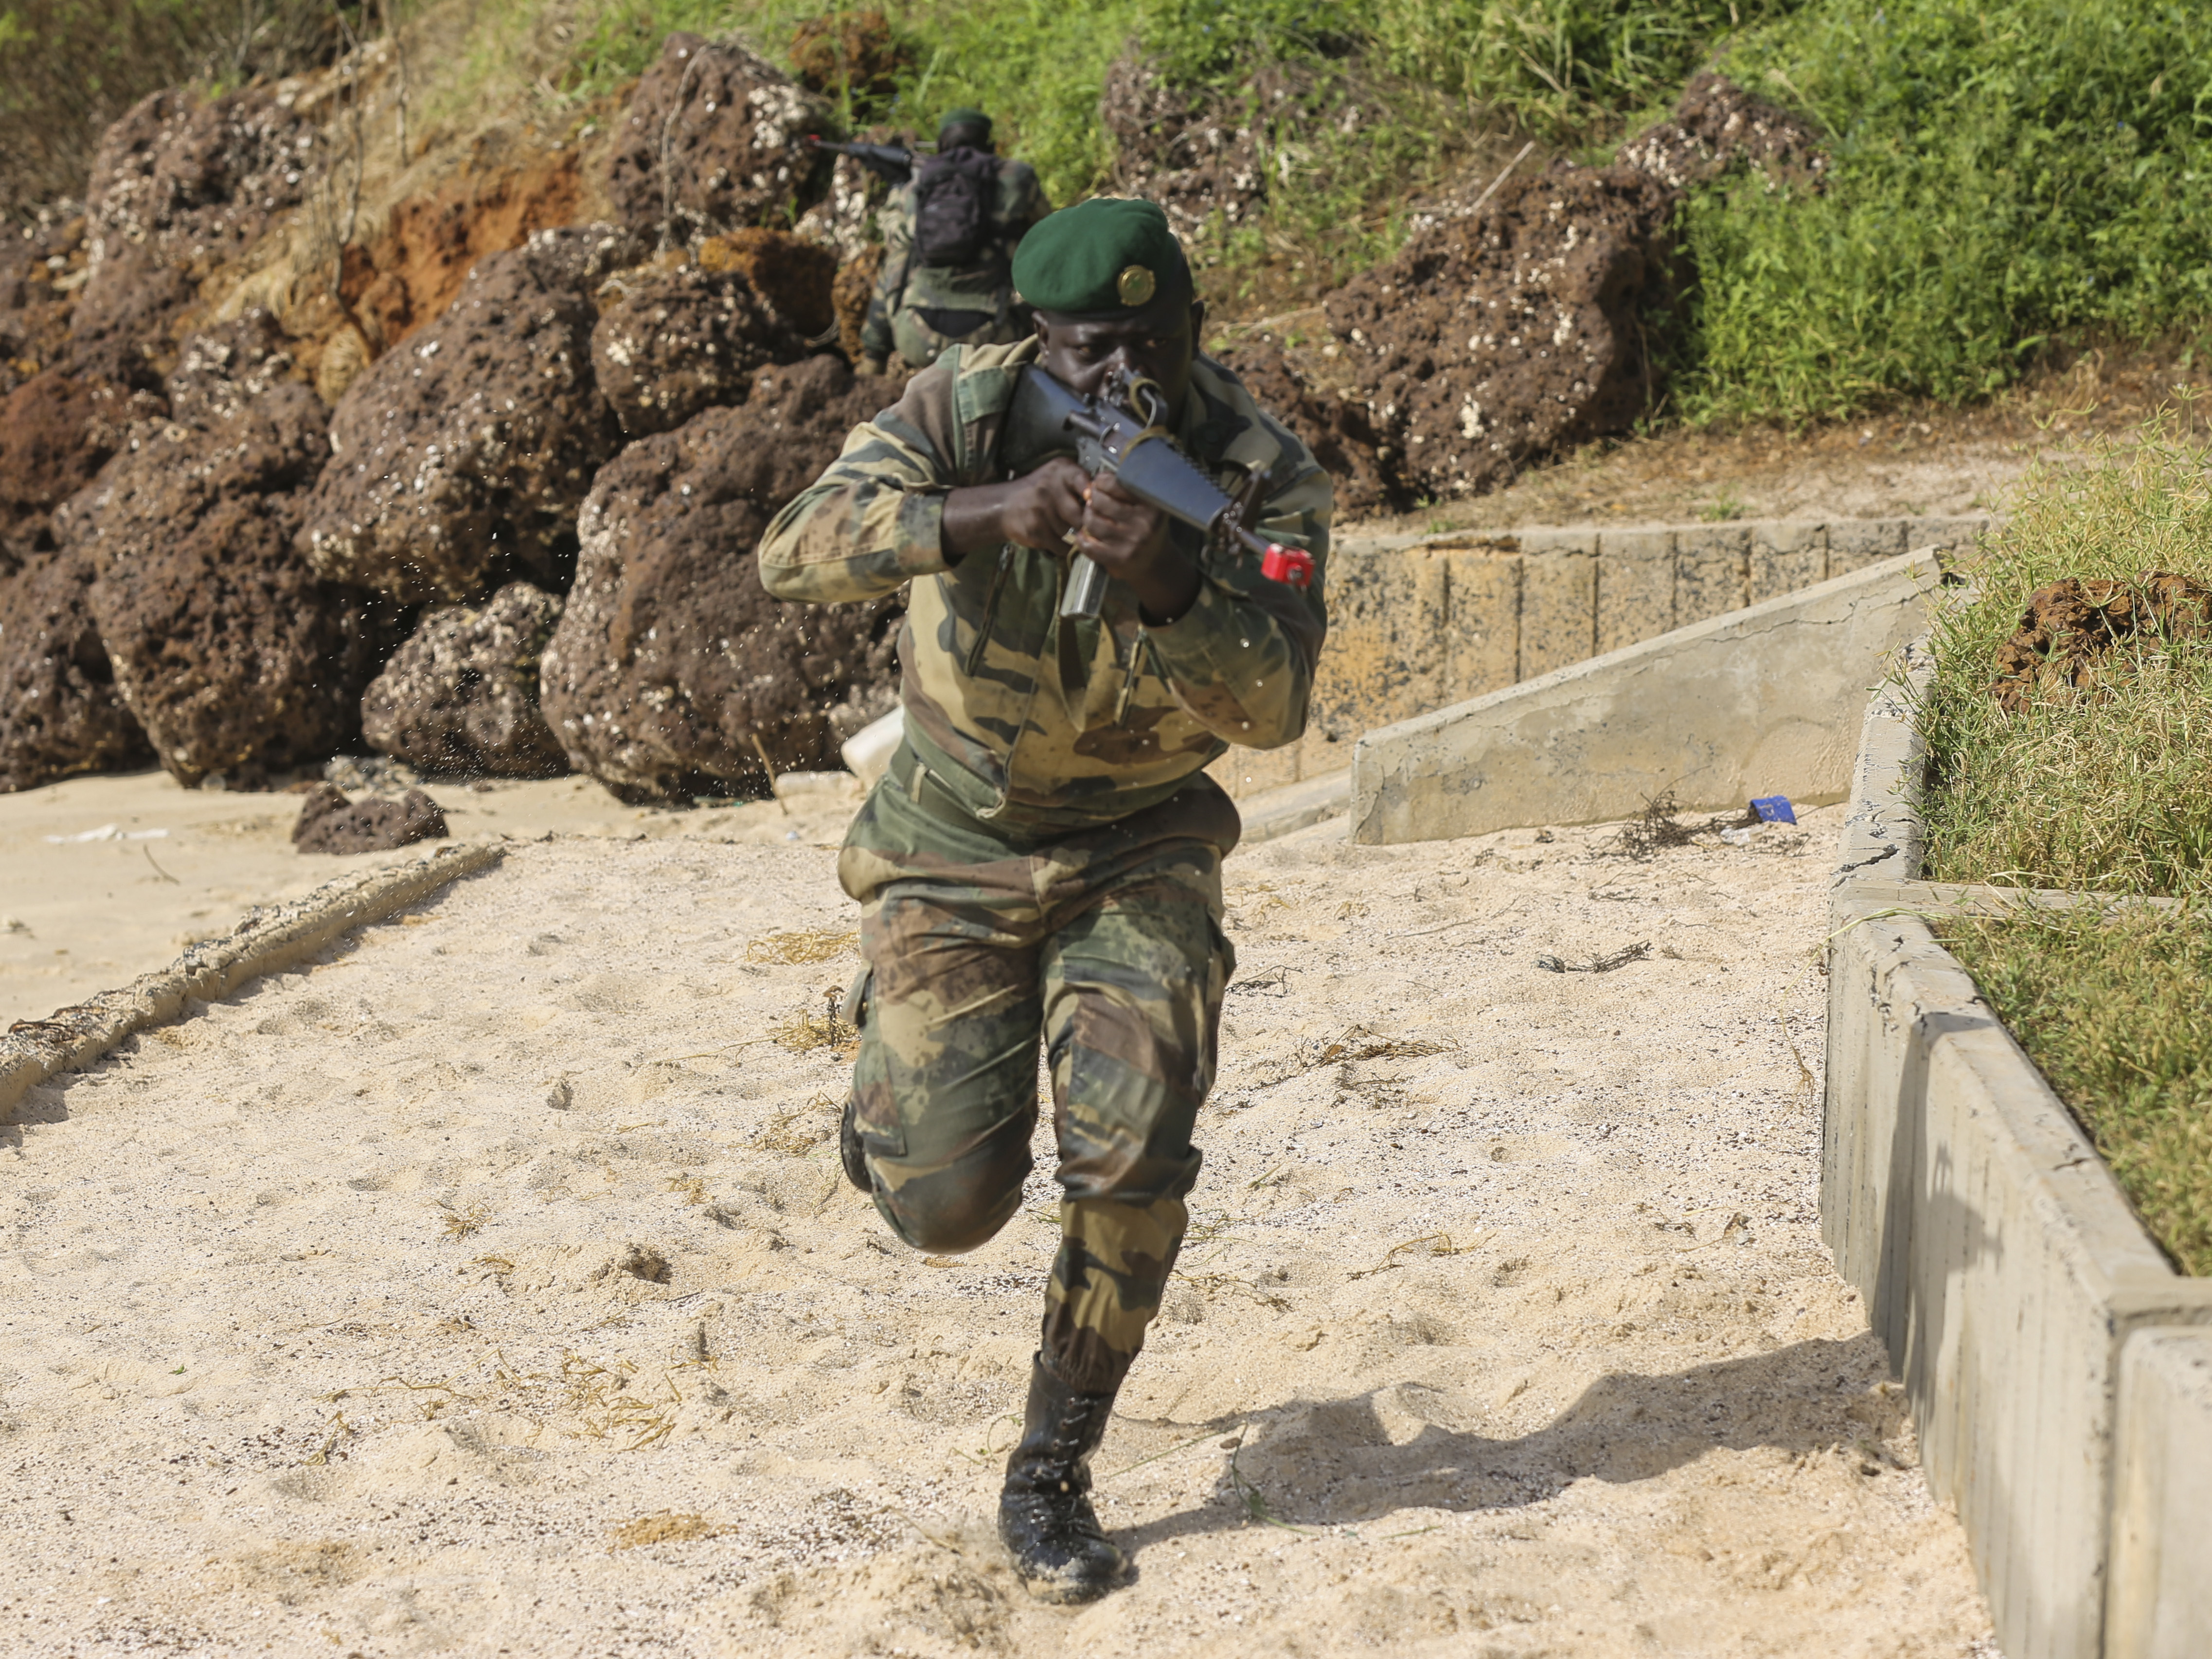 A Compagnie Fusilier de Marin Commando raids the beach during the final exercise with U.S. service members in Dakar, Senegal, Sept. 17, 2015. The Marines and Coast Guardsmen with Special-Purpose Marine Air-Ground Task Force Crisis Response-Africa spent four weeks training the COFUMACO on basic infantry tactics and small-boat operations as a part of a Maritime Security Force Assistance mission to increase interoperability with Senegal's and strengthen the bond between the partner nations.  (U.S. Marine Corps photo by Cpl. Olivia McDonald/Released)